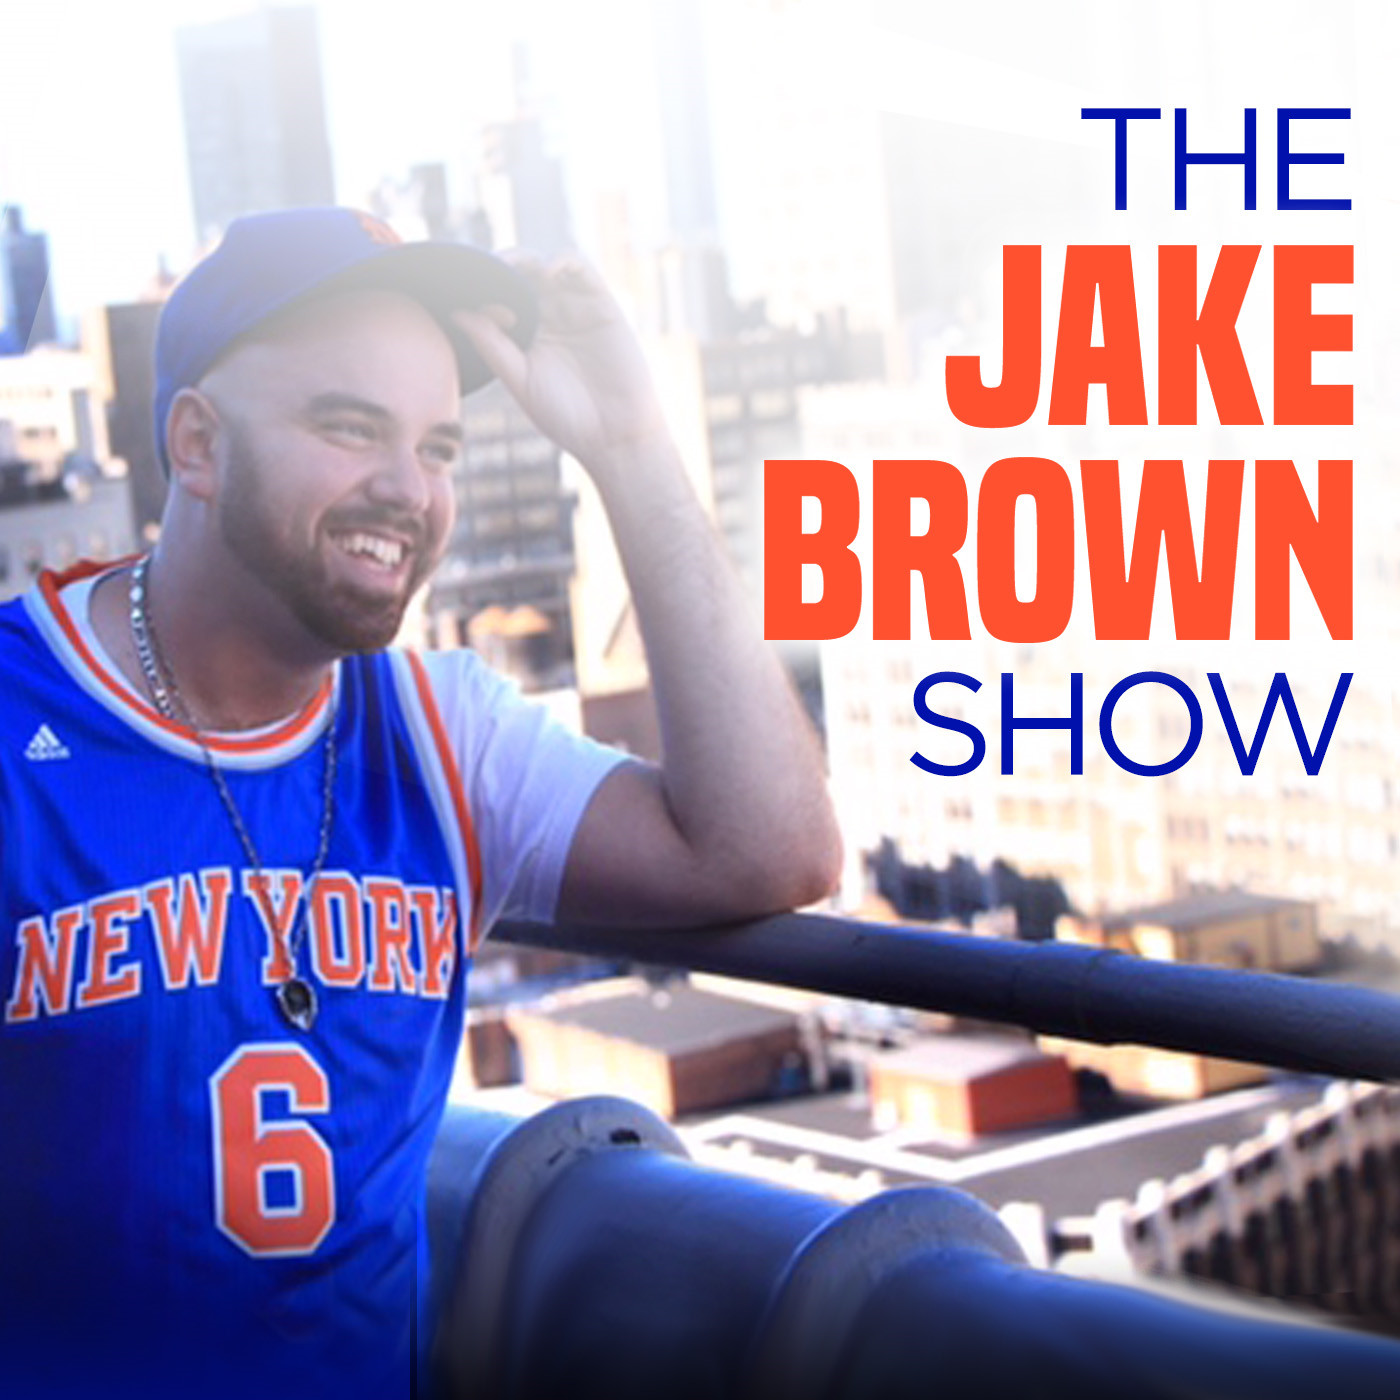 The Jake Brown Show